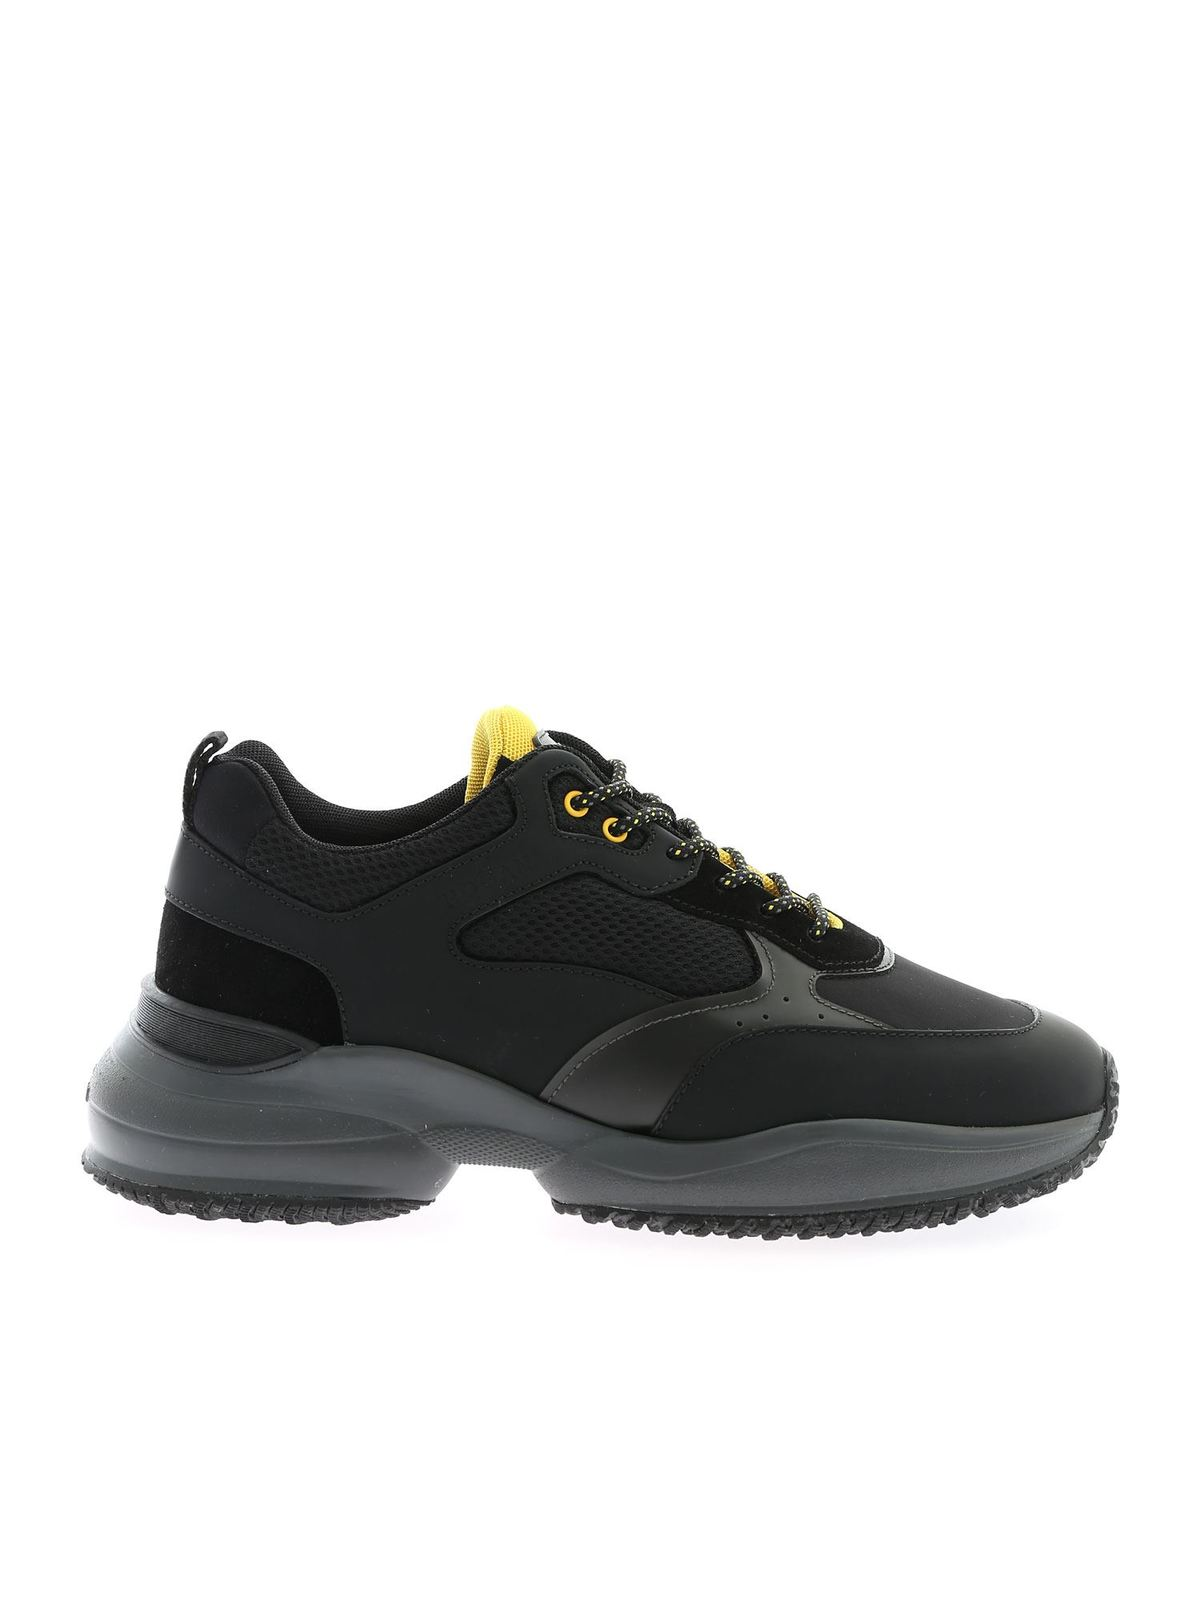 Sneakers Hogan - Sneakers Interaction nere e gialle ...